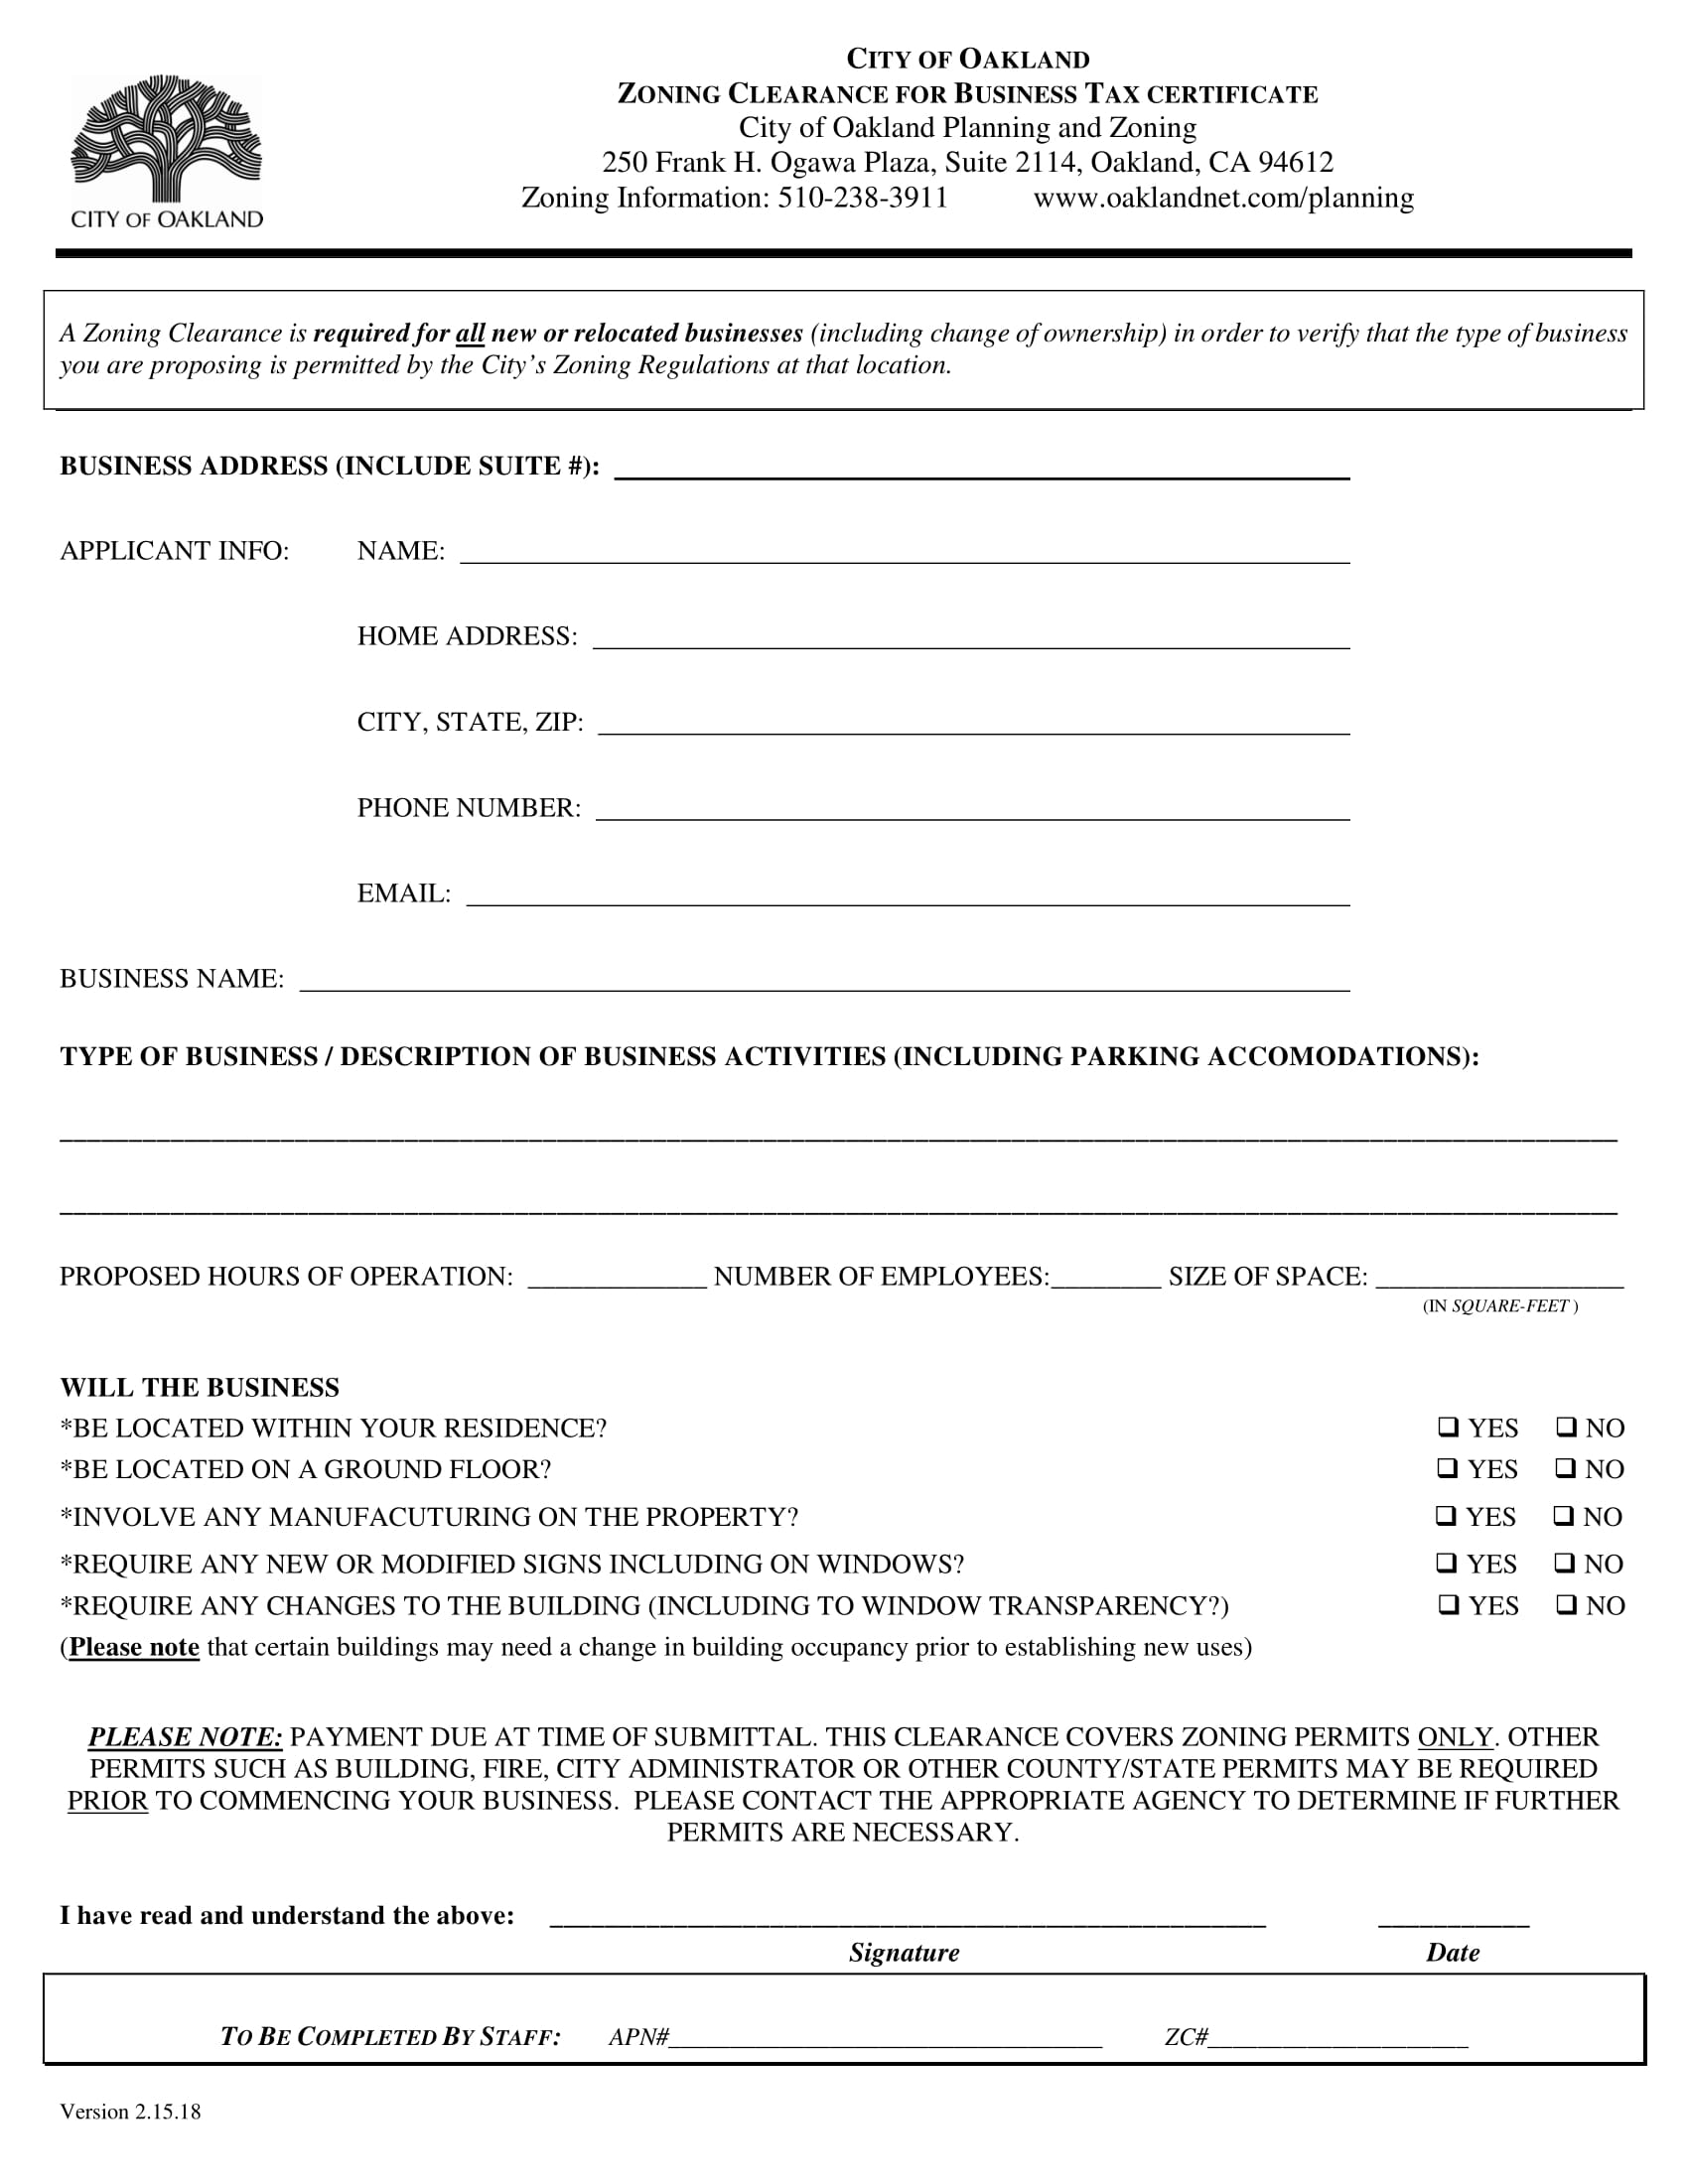 Zoning-Clearance-Form-1 Legal Employment Application Form on namibia government, free printable blank, mra examples, free construction, dental assistant,